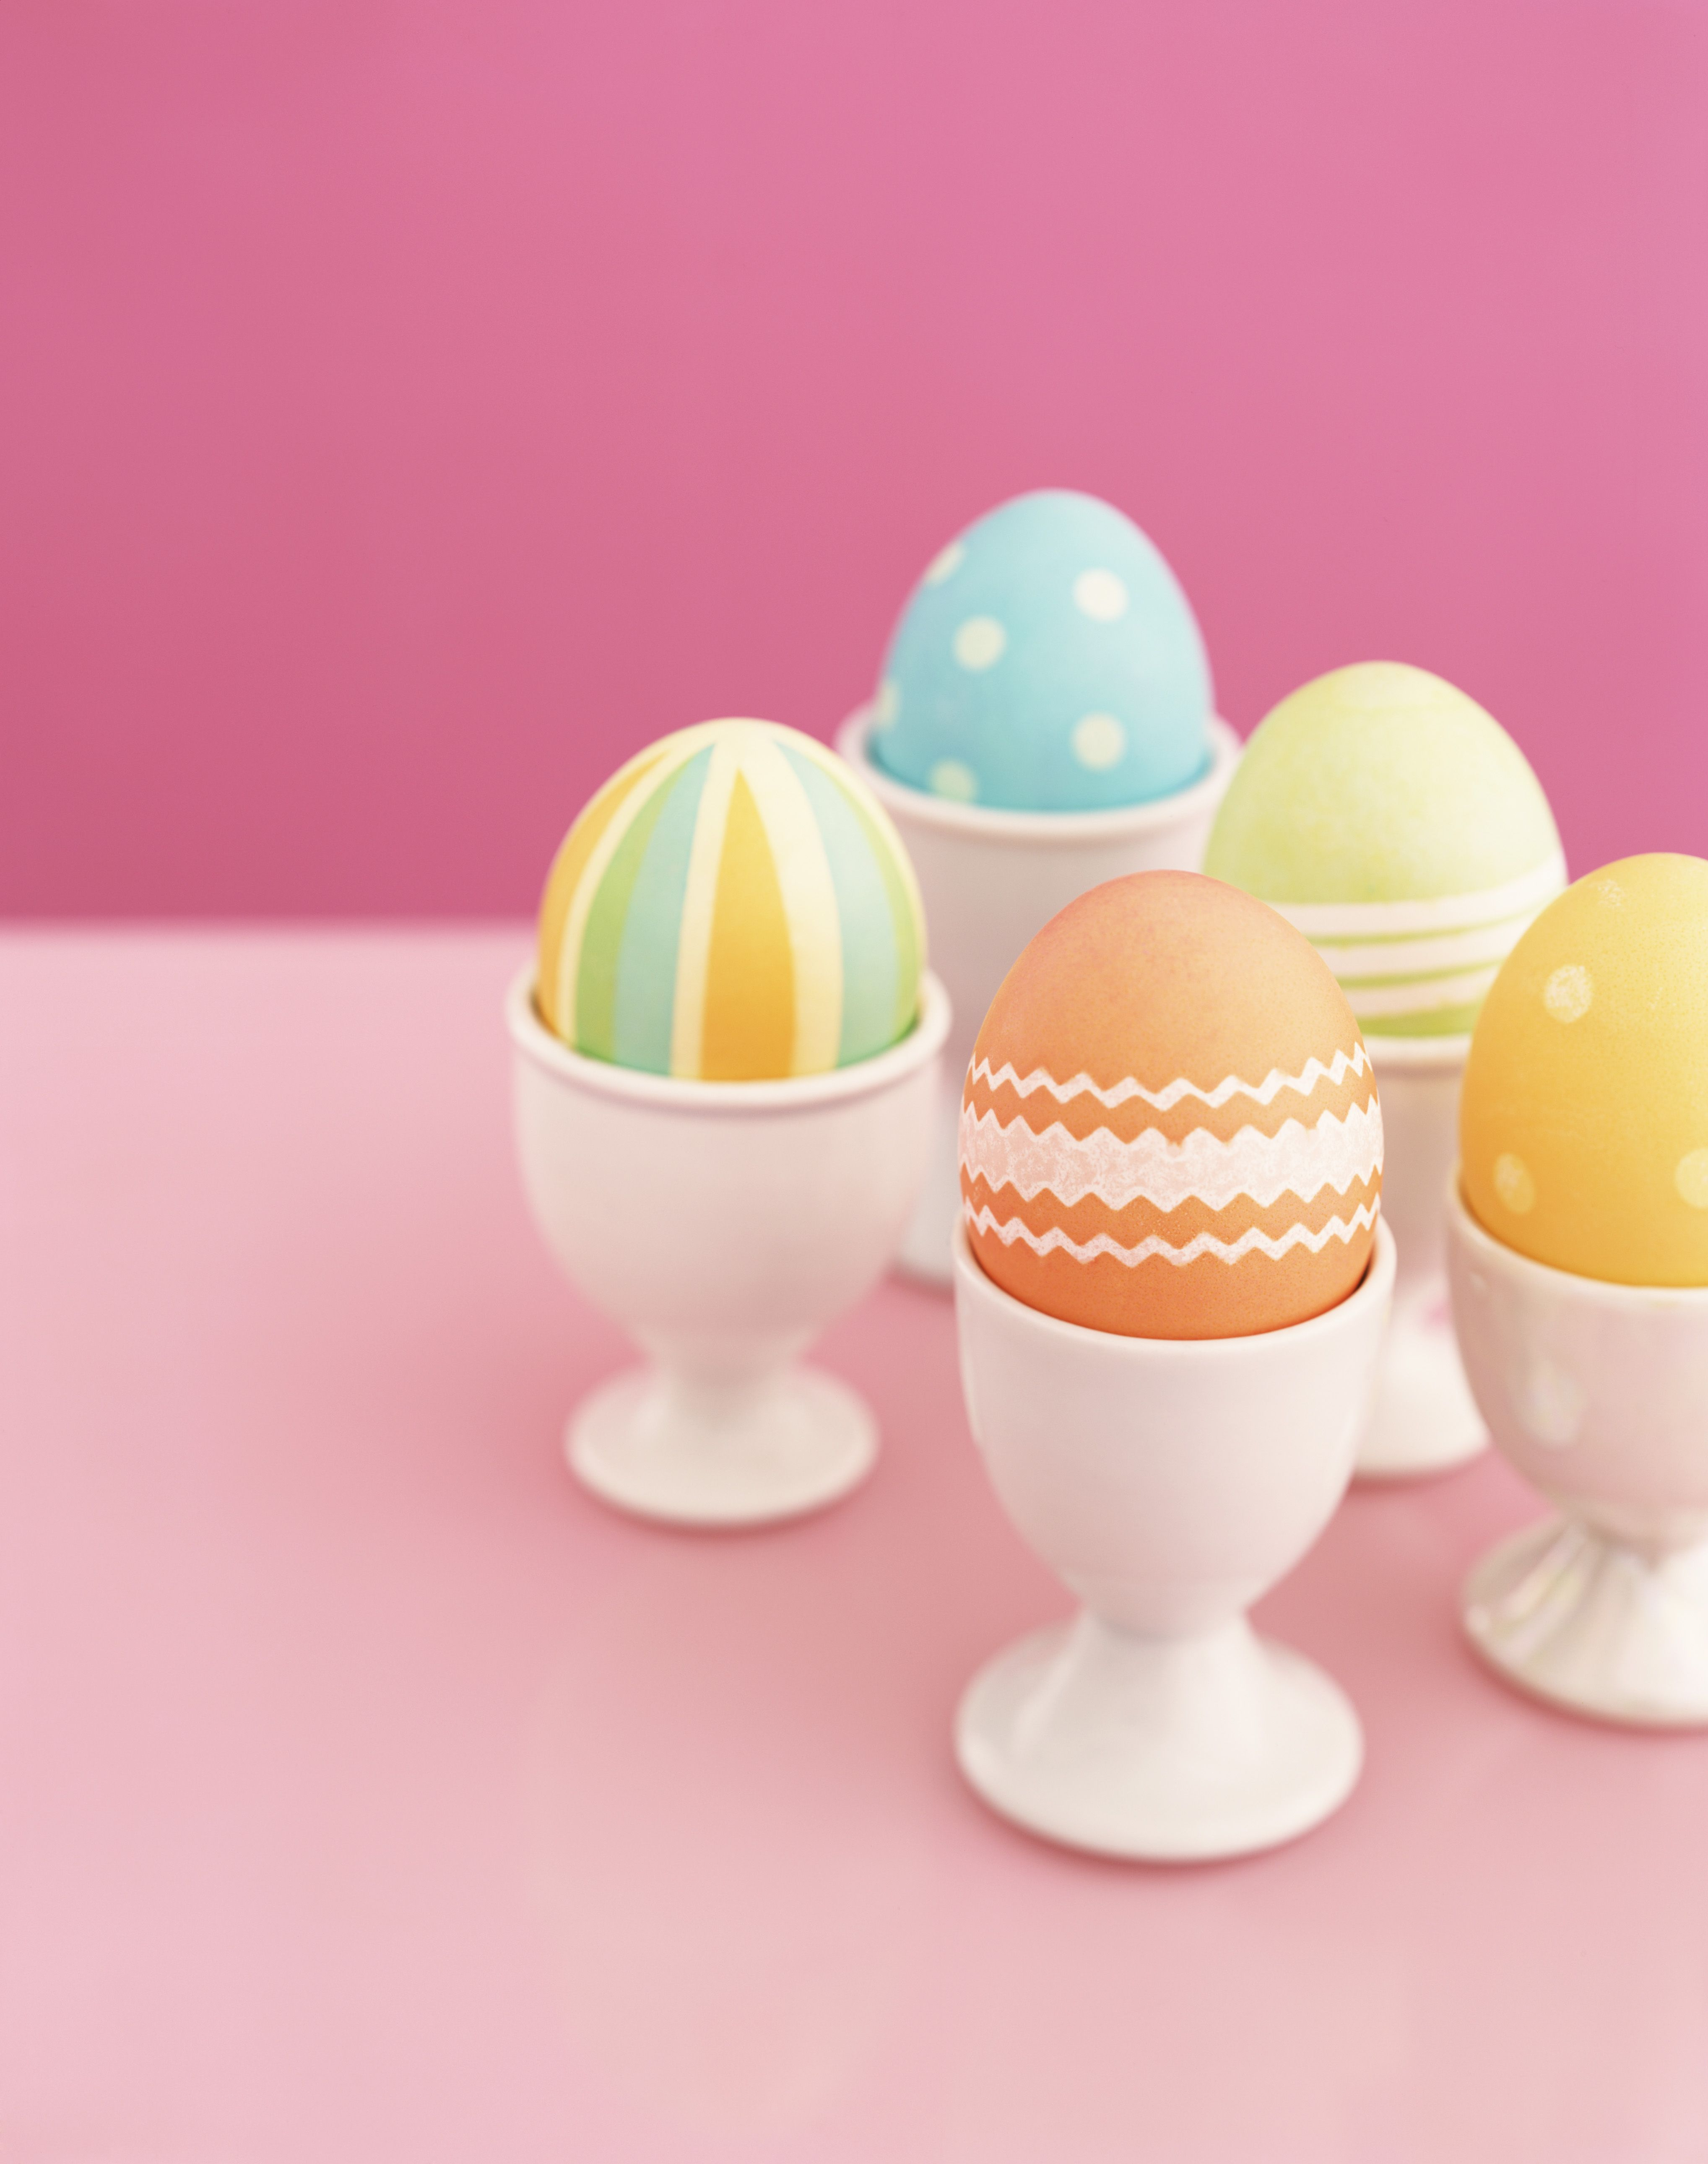 Easter Egg The History Of Easter Eggs Why We Dye And Decorate Easter Eggs